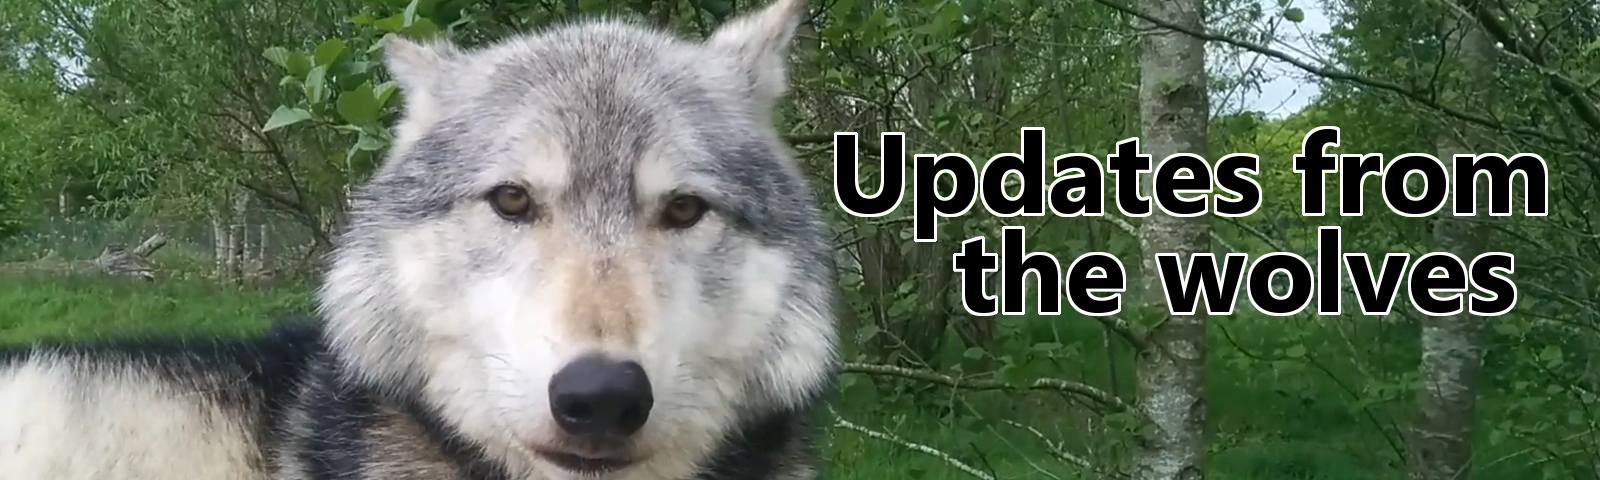 Updates from the wolves